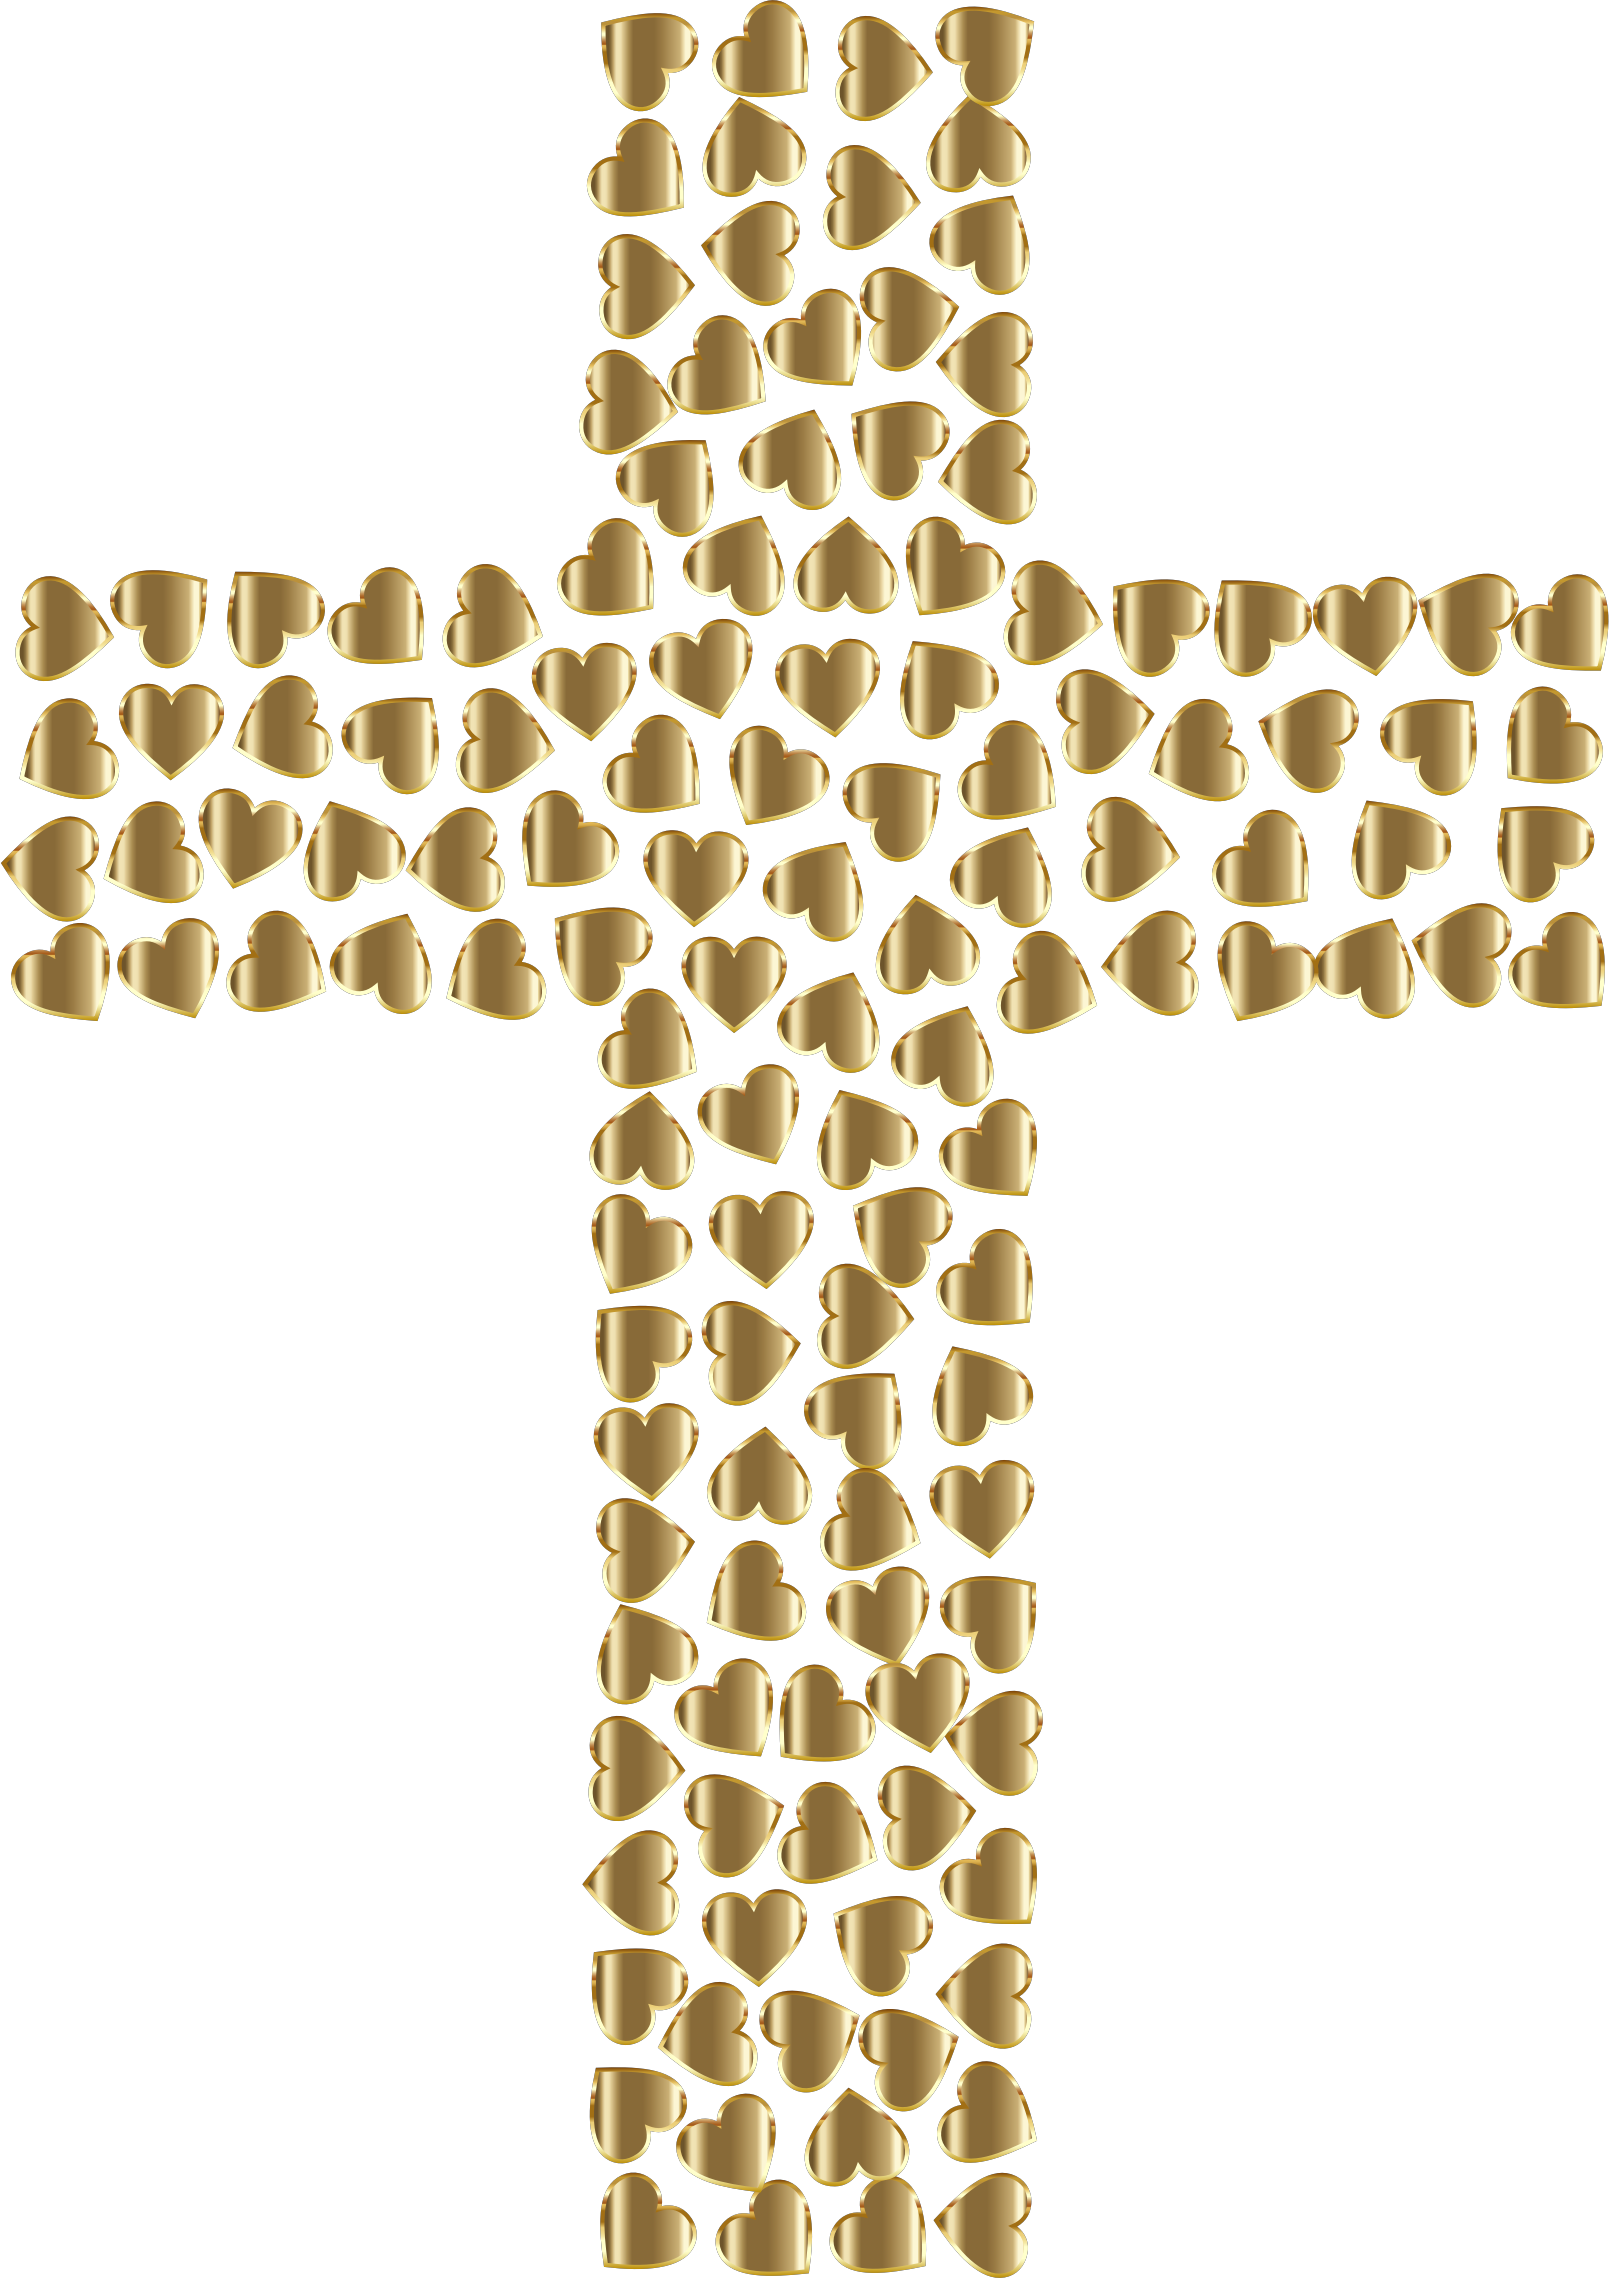 Golden Hearts Cross No Background by GDJ